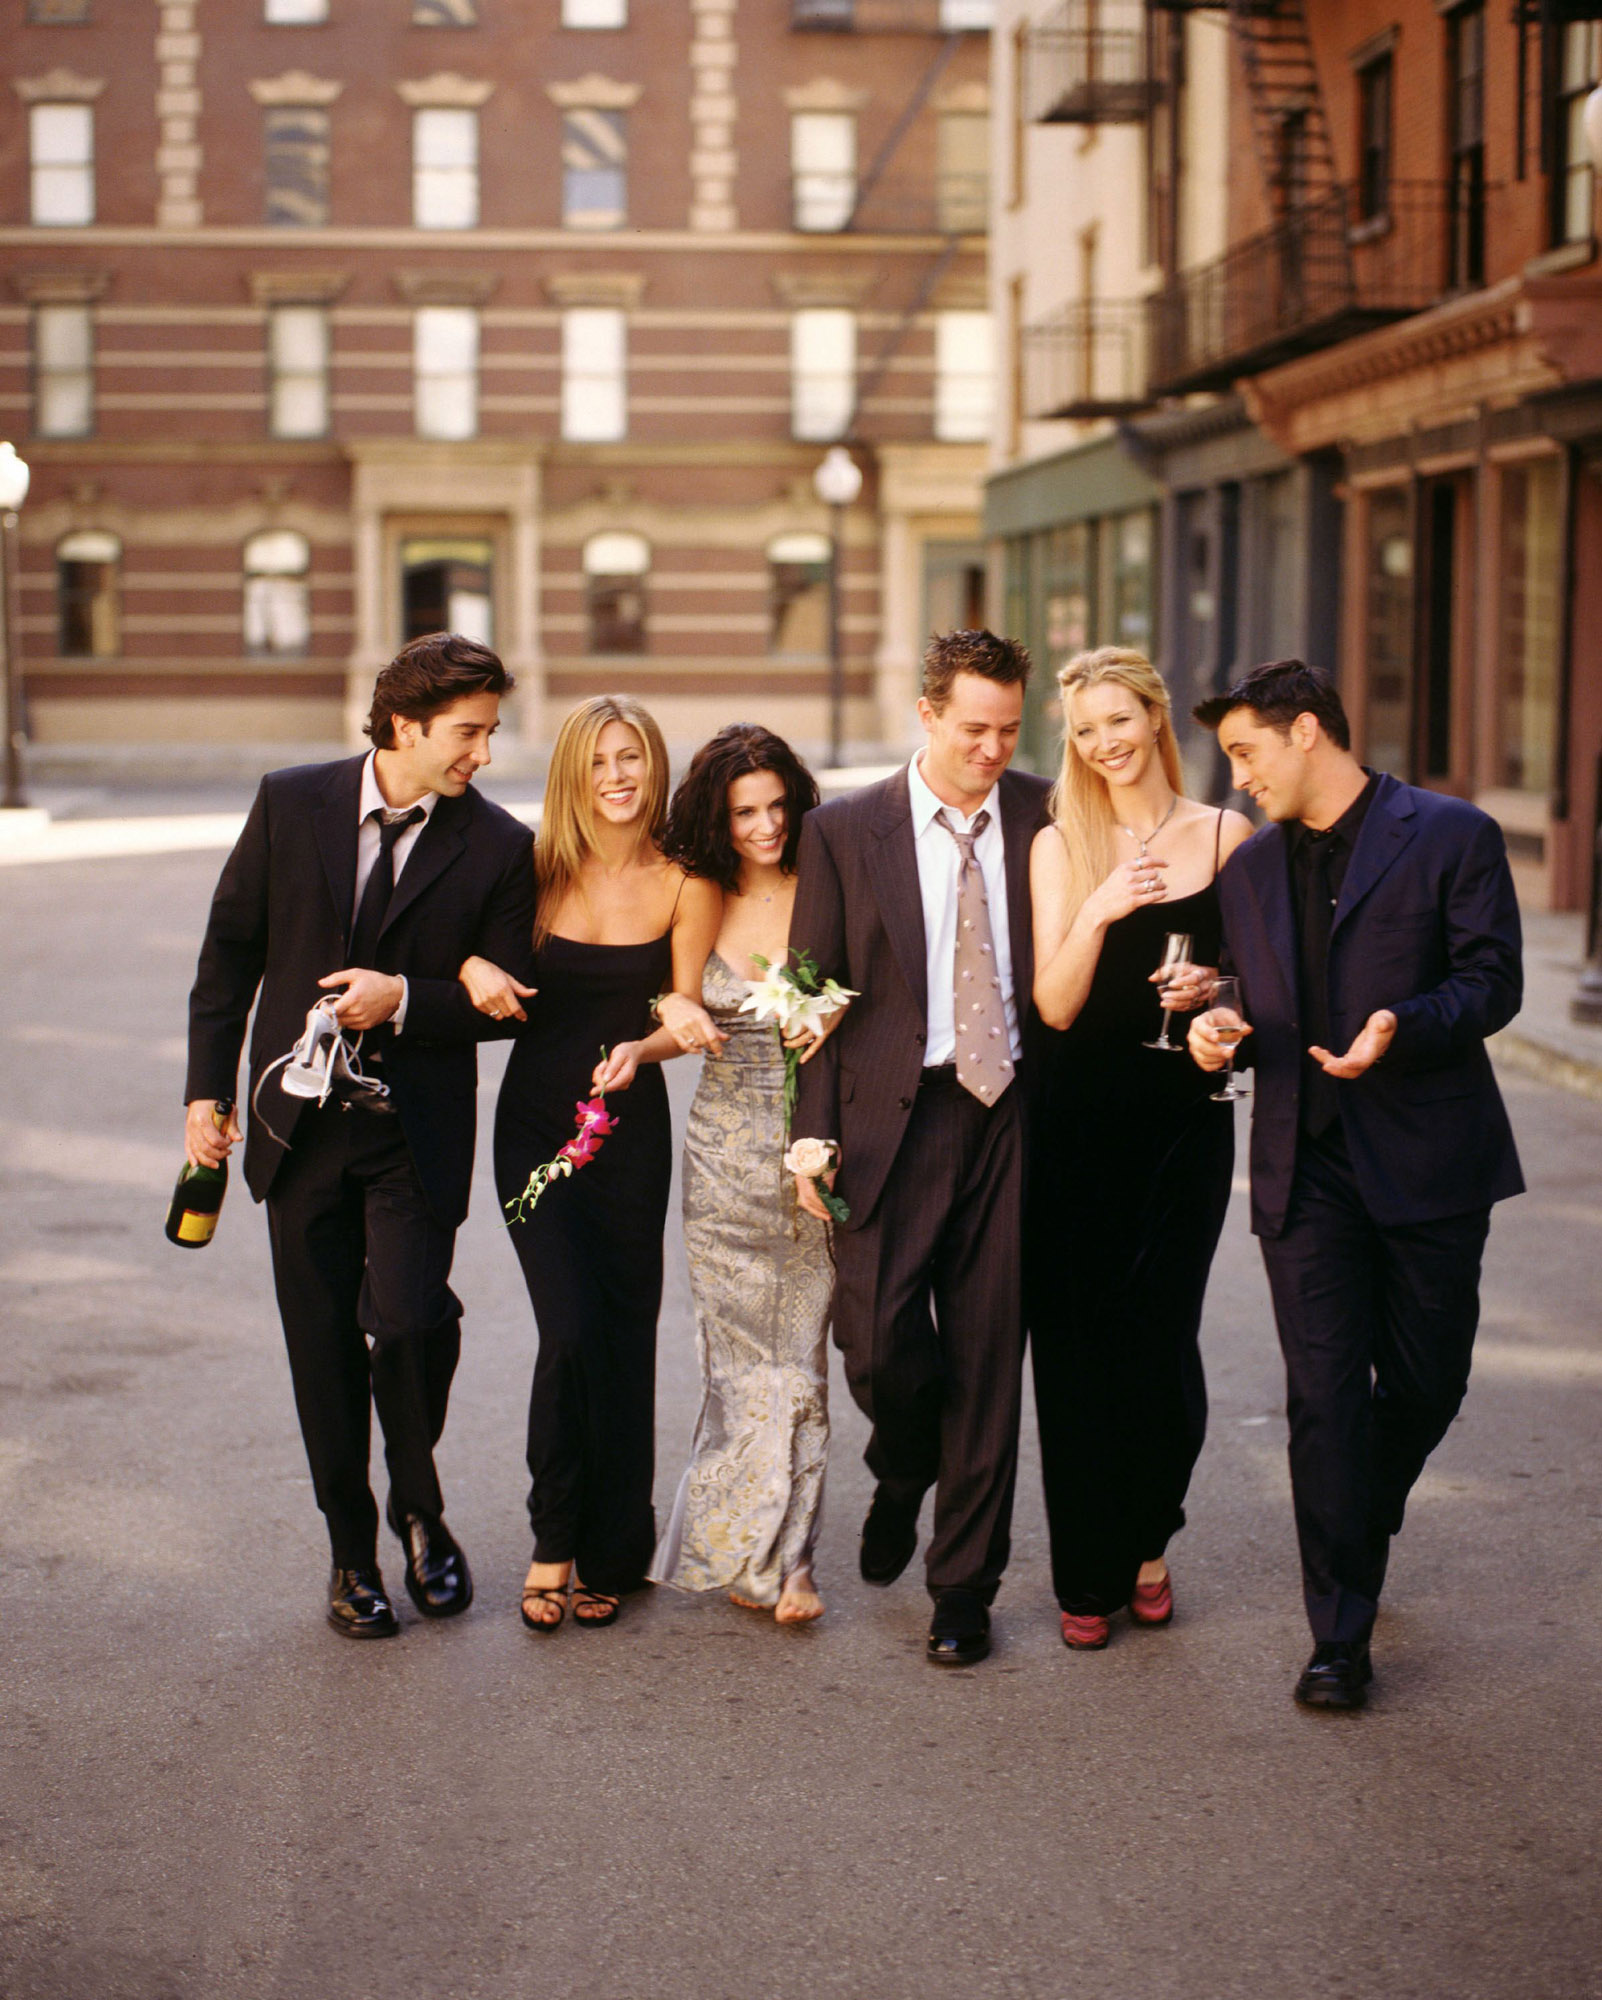 Watch friends season 7 episode 17 the one with the cheap wedding dress online